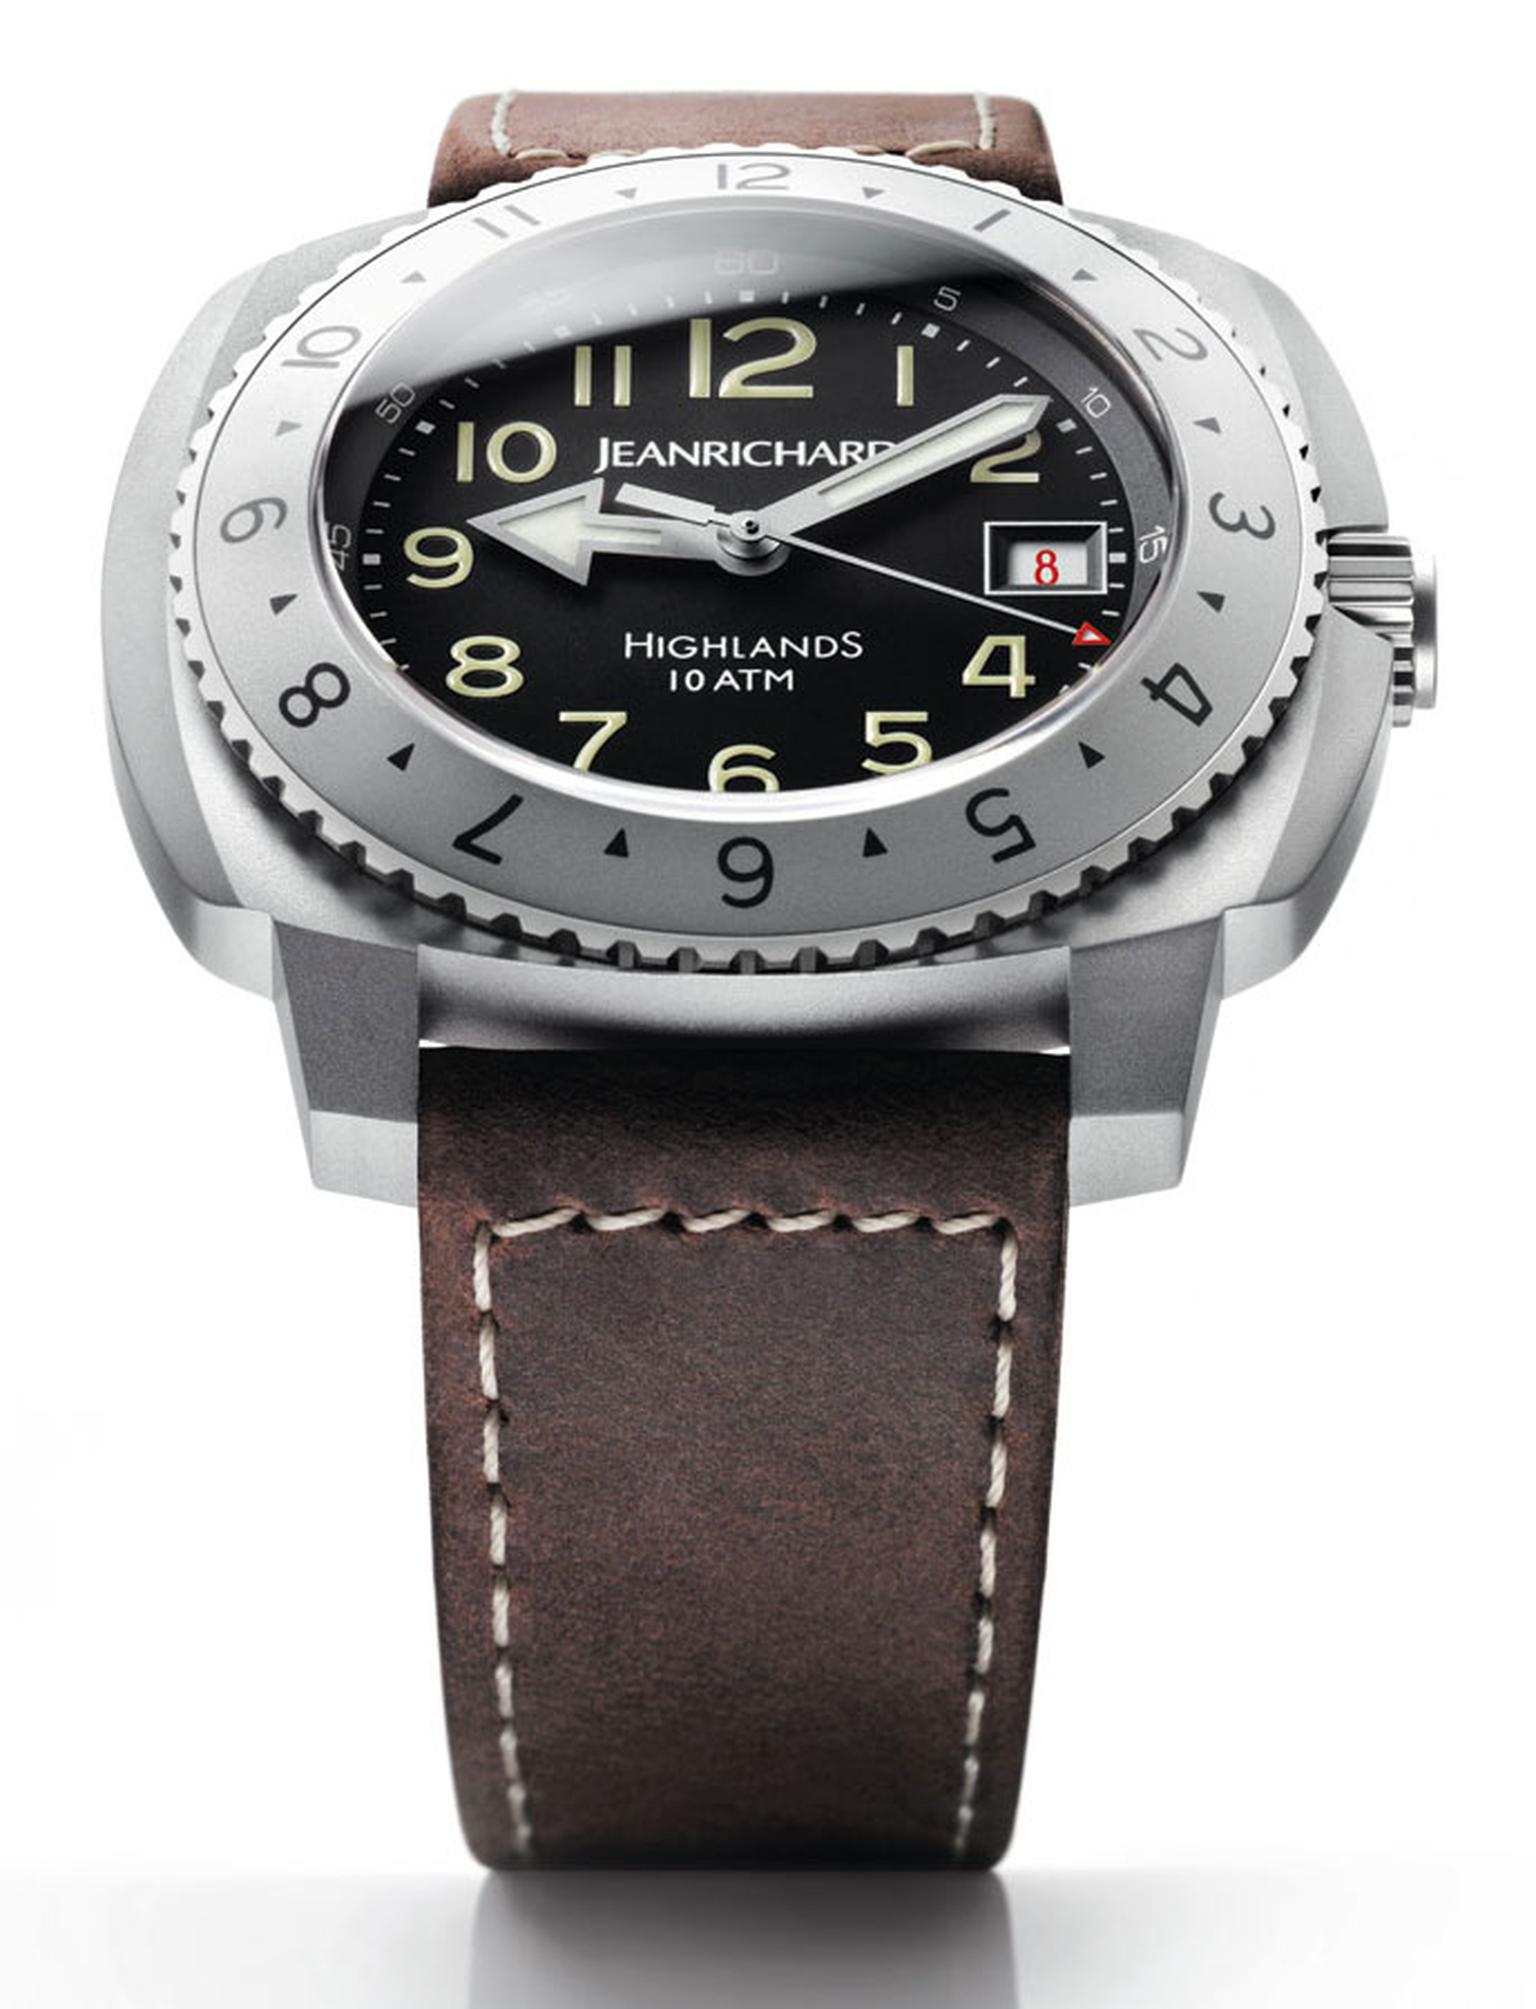 Jean Richard Highlands Big Life Ebony watch steel with a sand-blasted finish and calfskin strap POA